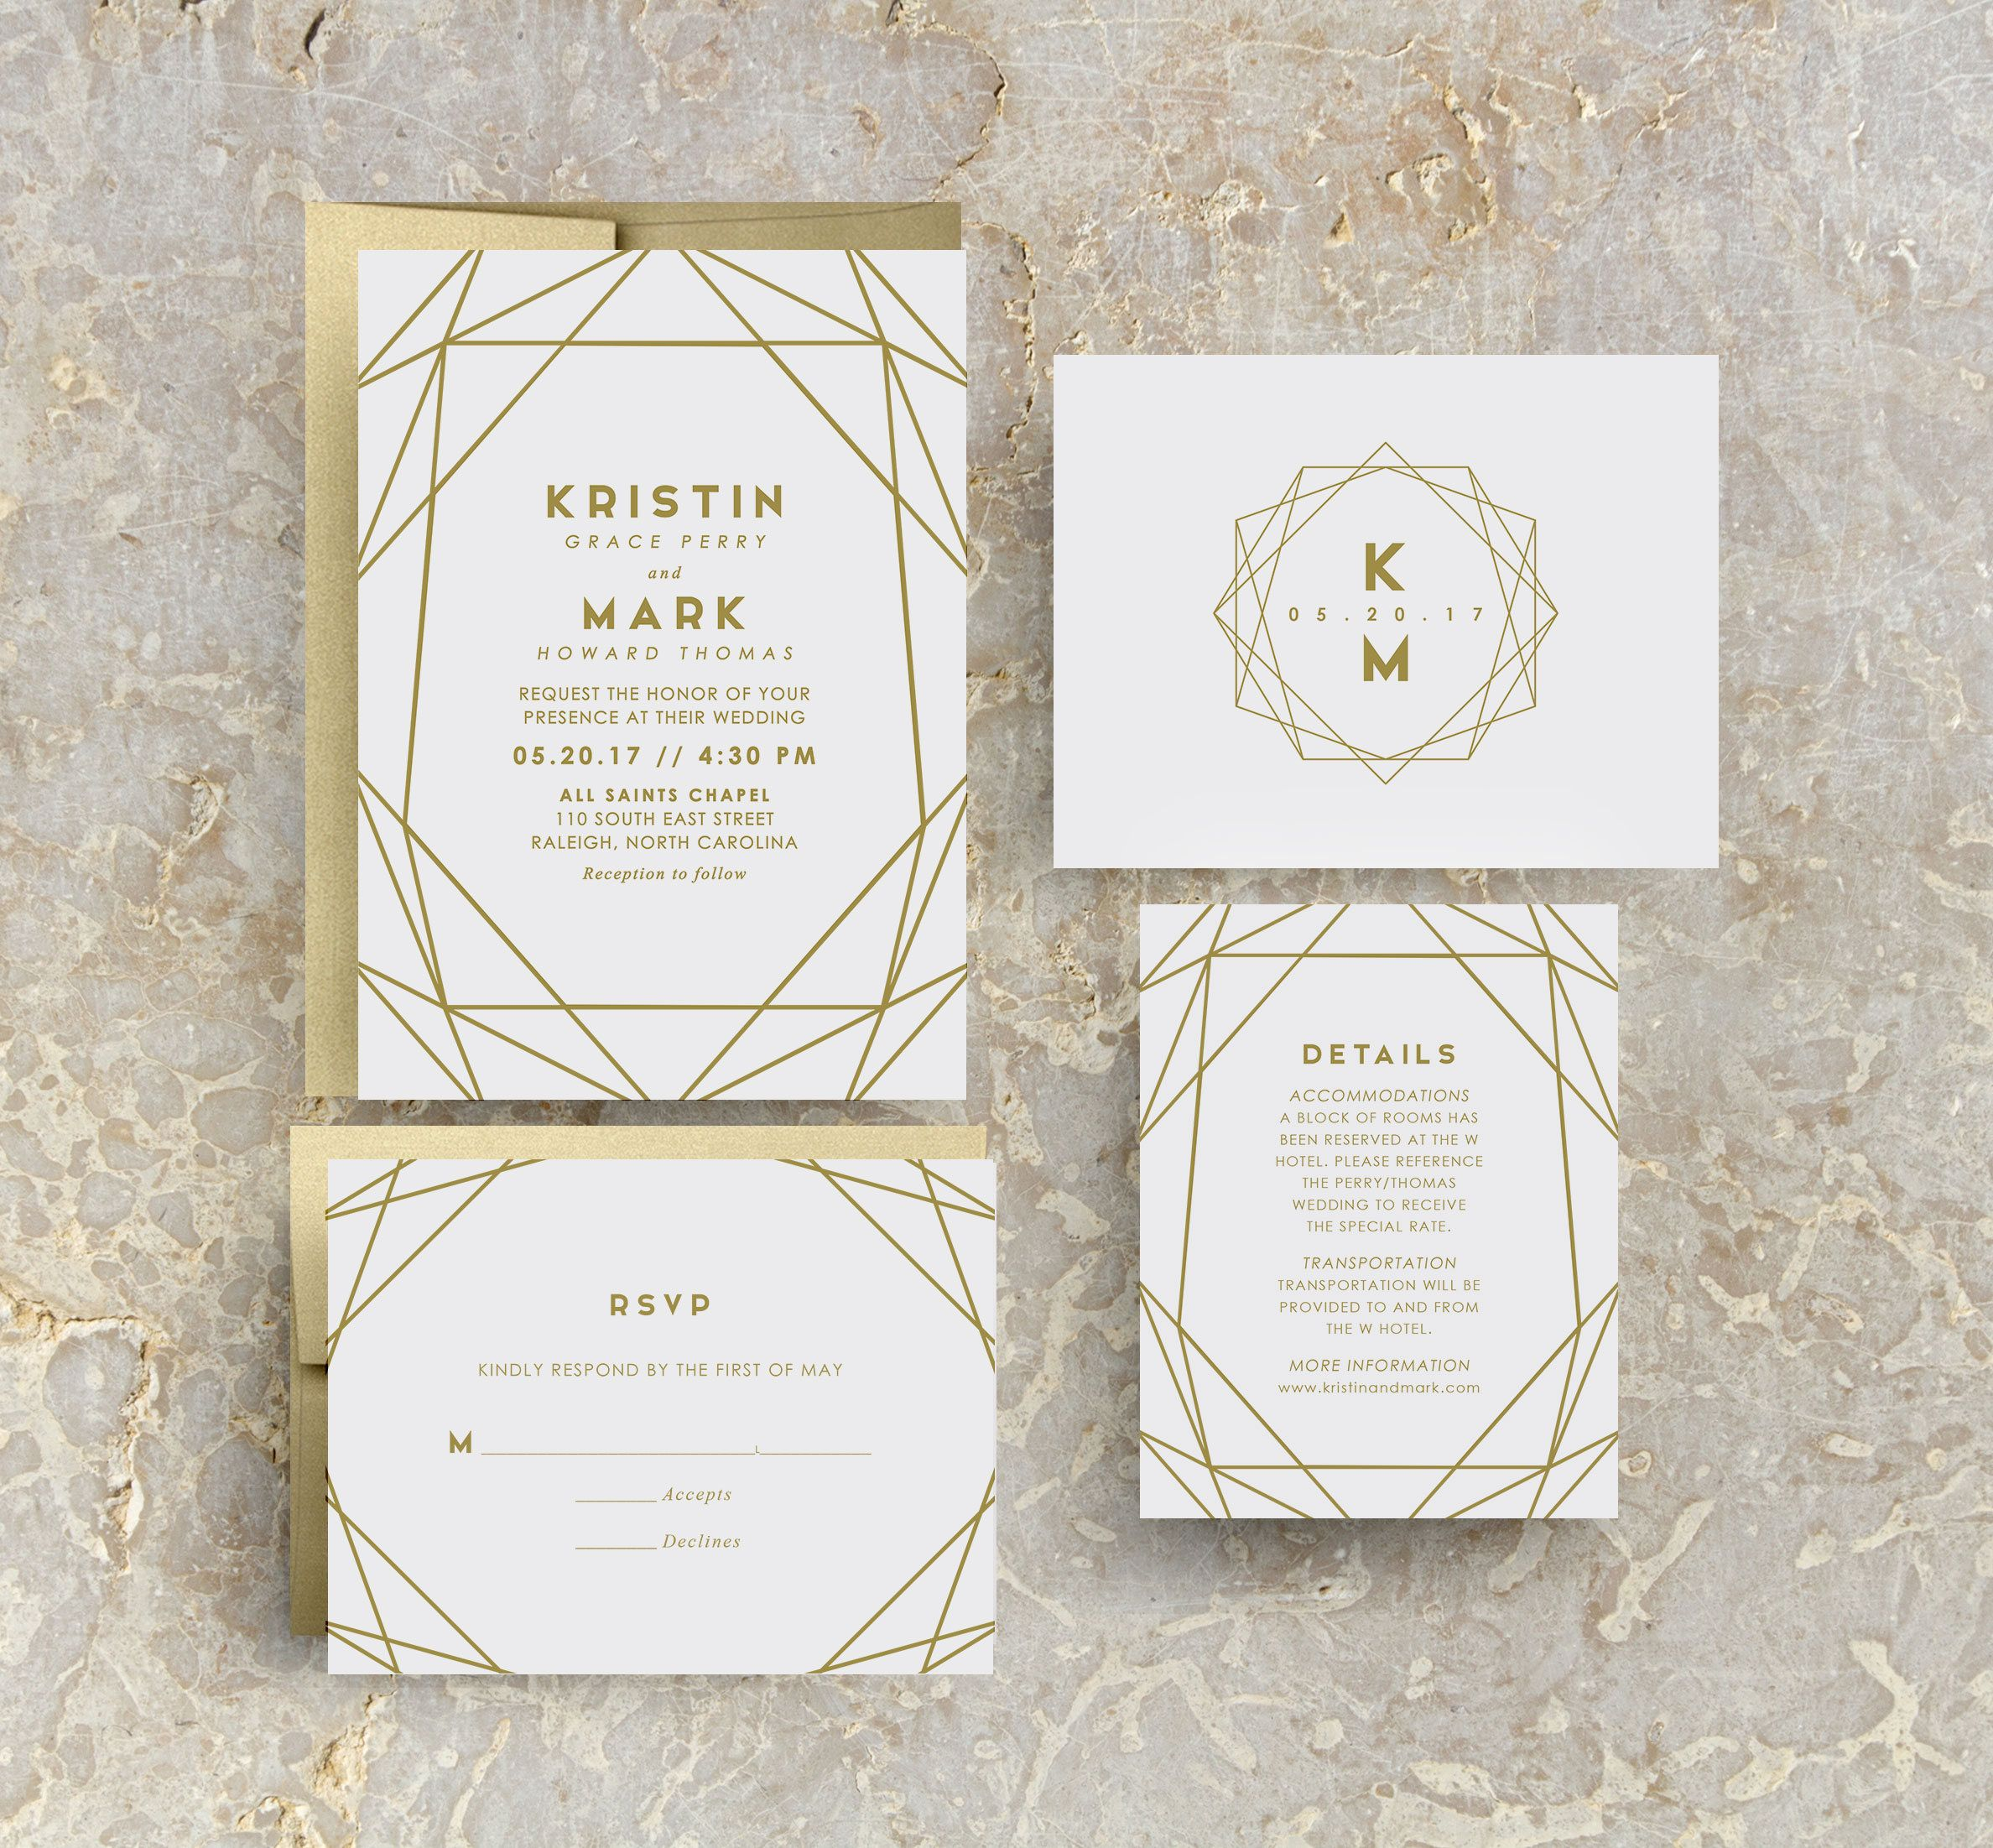 Gold color cardstock paper 5x7 - Gold Geometrics Are The Latest Trend In Wedding Design Printed On Thick Cardstock With Premium